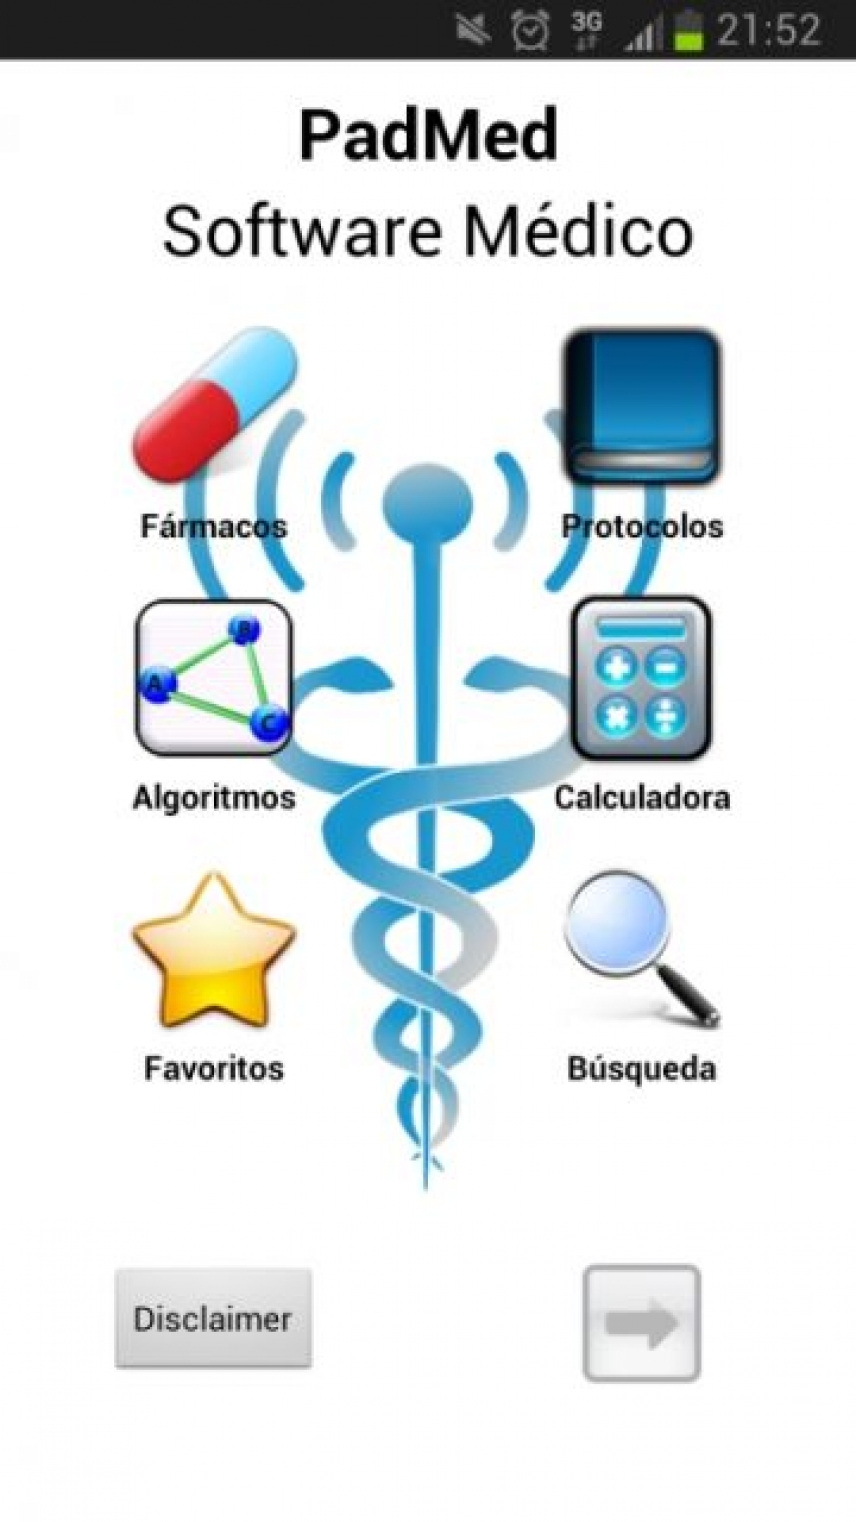 IMIBIC Researchers create PadMed, a mobile application to facilitate daily medical practice